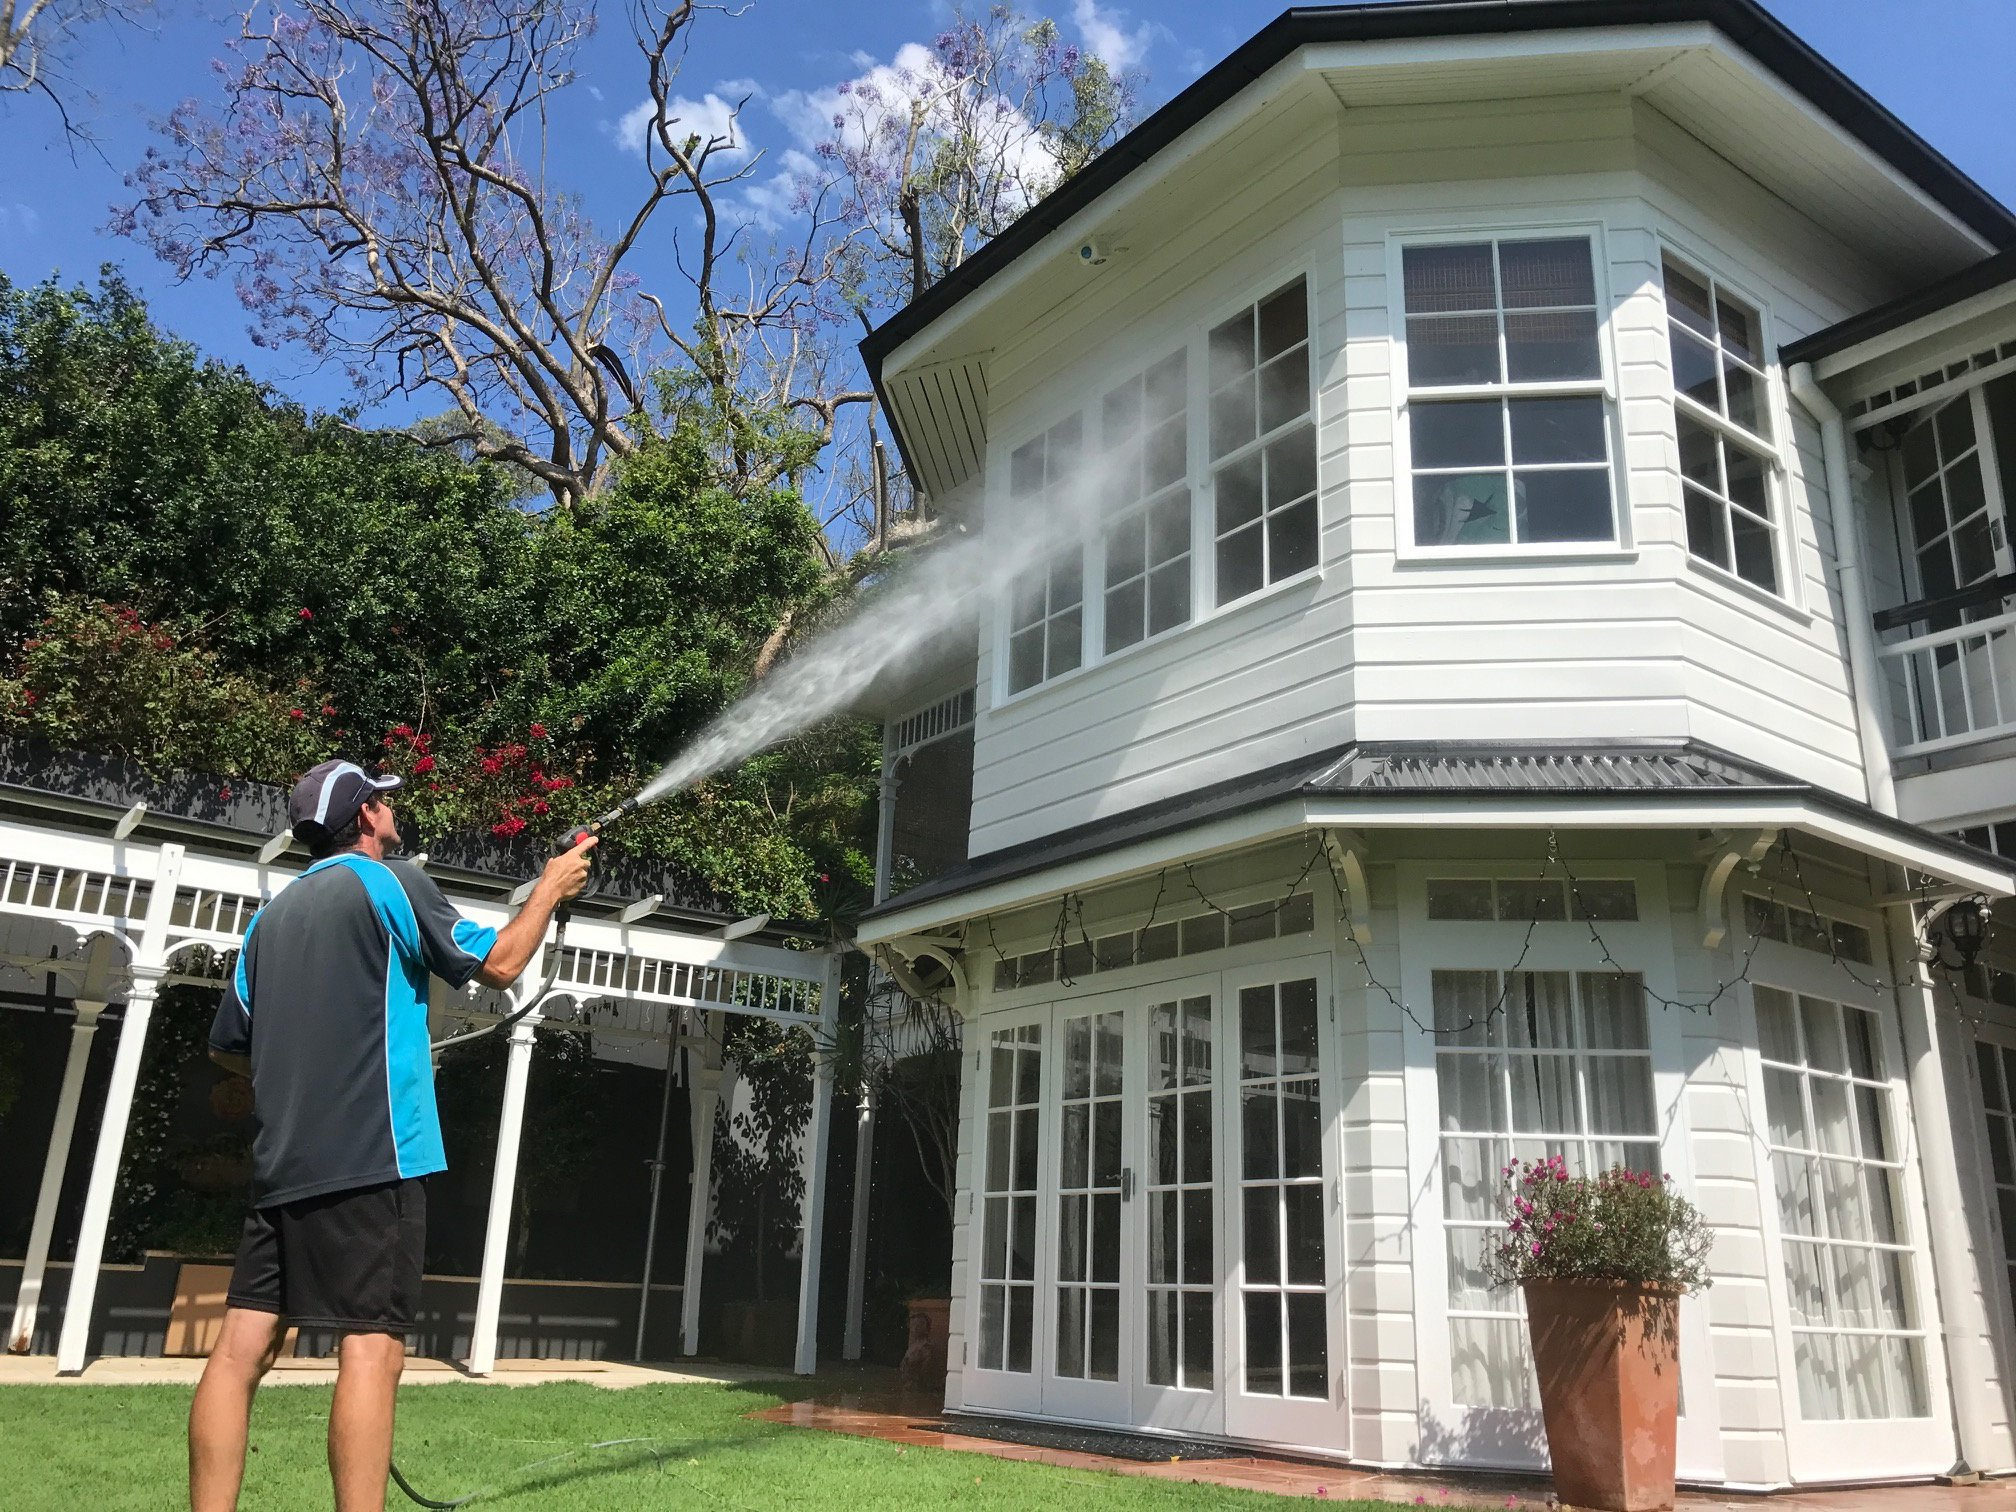 Nambour Roof washing services